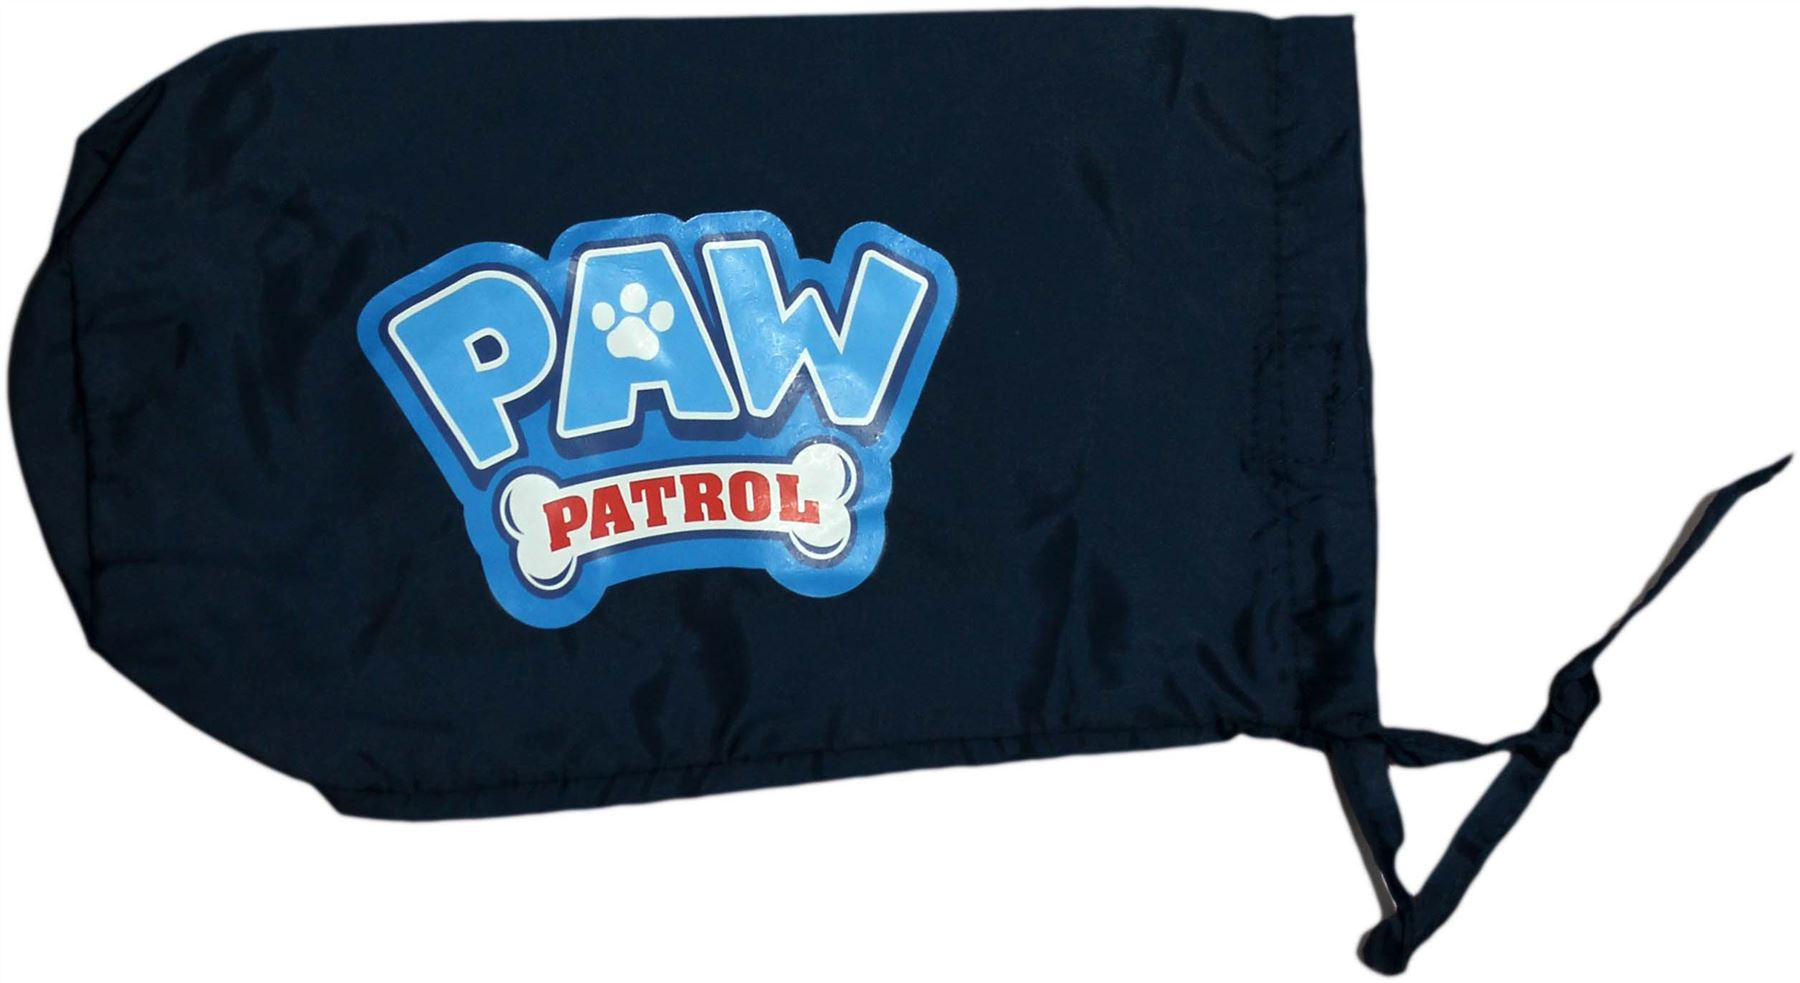 Paw Patrol Boys Kids Panel Rain Coat Jacket with Hood and Pouch